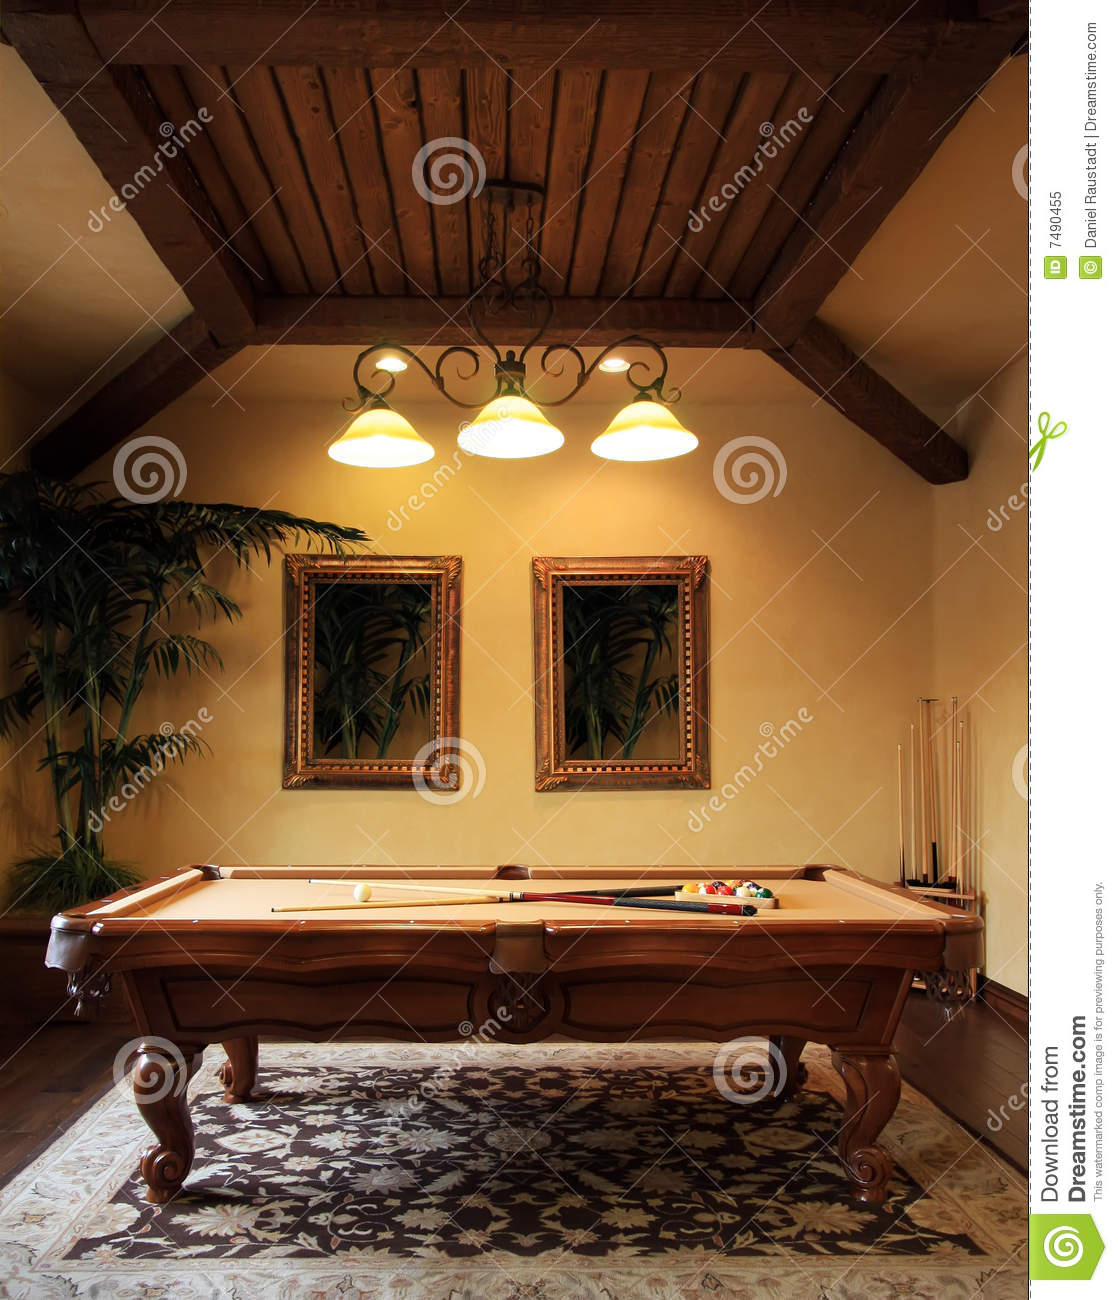 photos of beautifully decorated living rooms yellow blue and brown modern pool game room royalty free stock photo - image ...